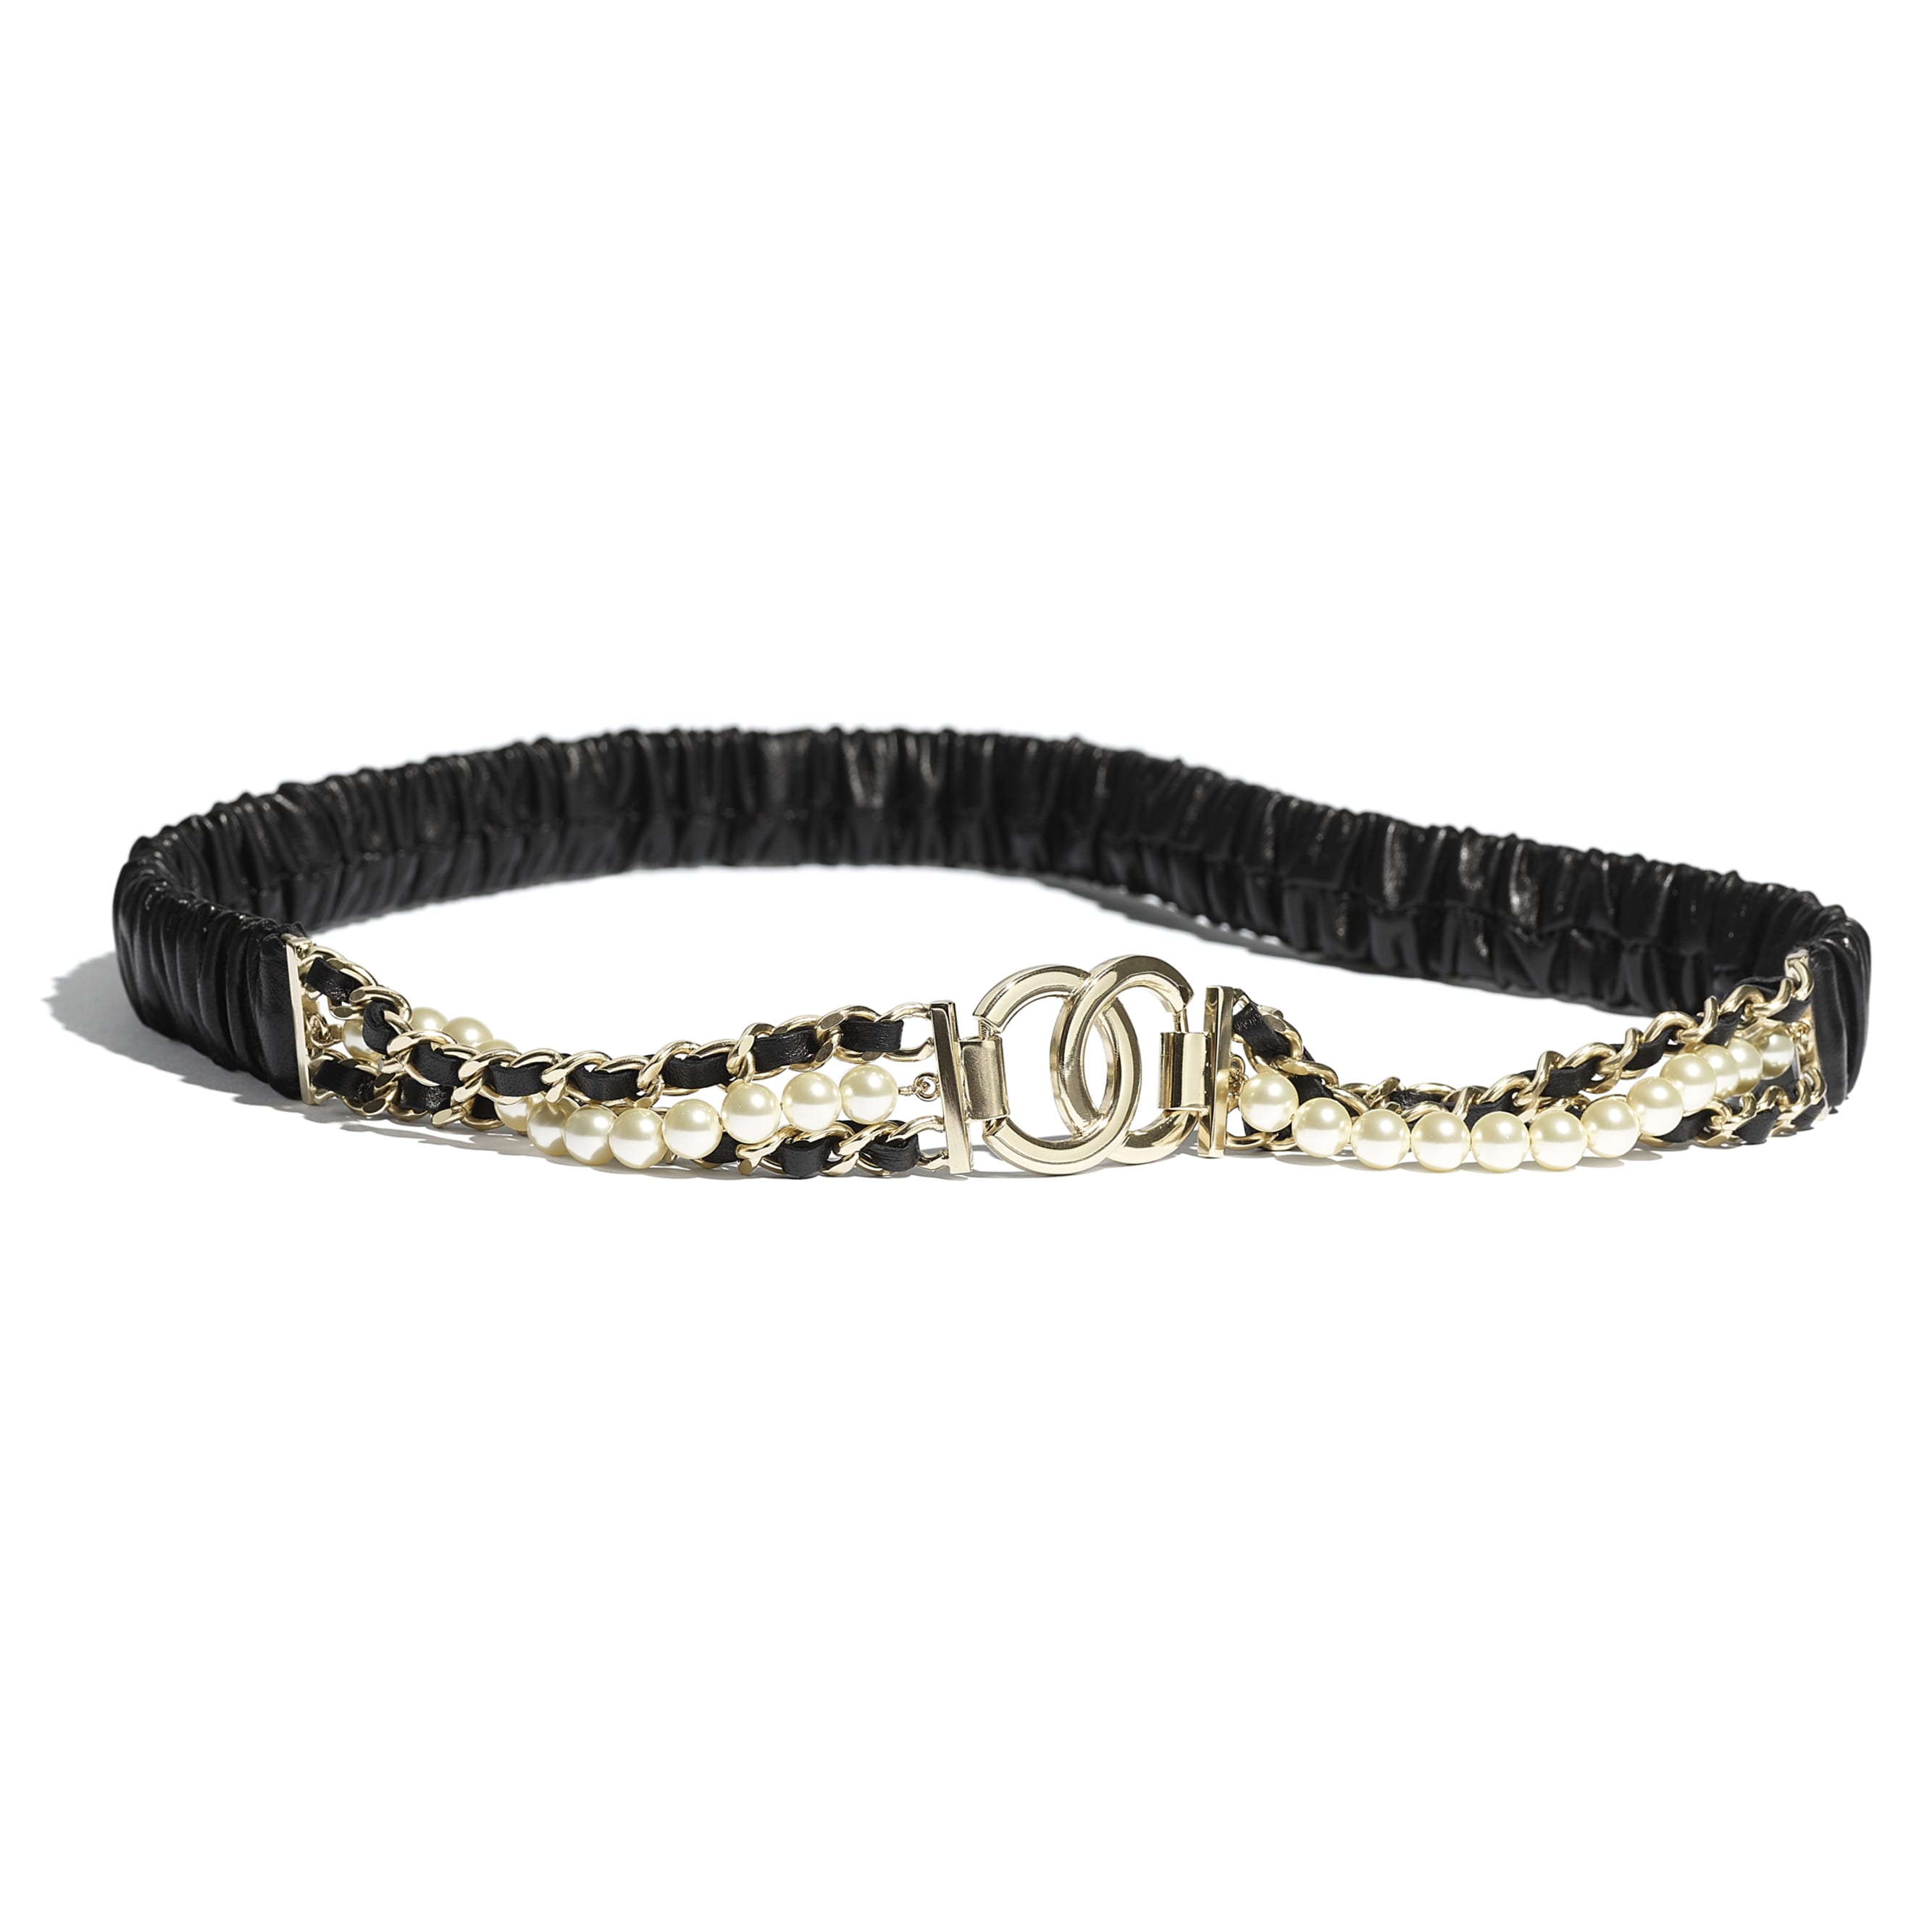 Belt - Black - Lambskin, Gold-Tone Metal, Glass Pearls & Strass - CHANEL - Default view - see standard sized version